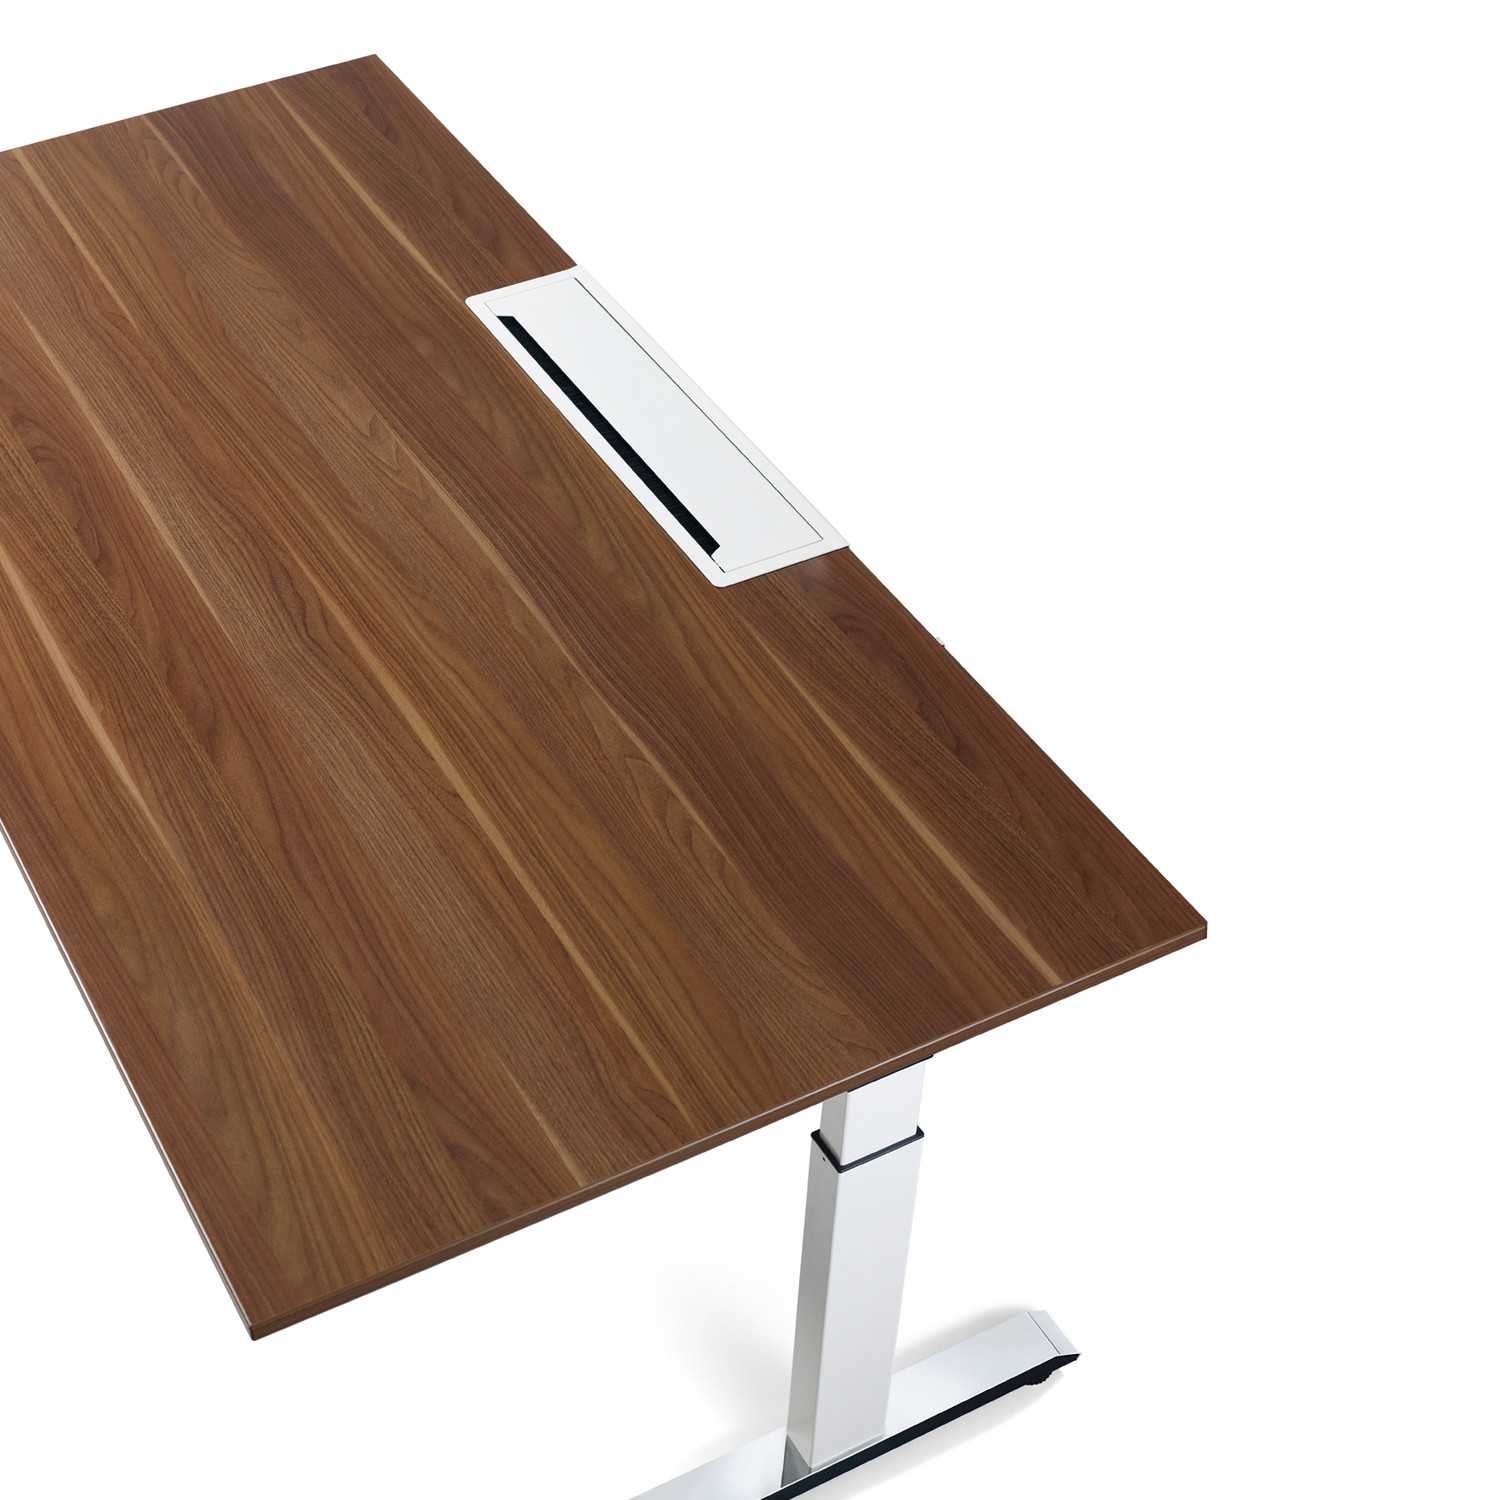 Temptation C Height Adjustable Desk